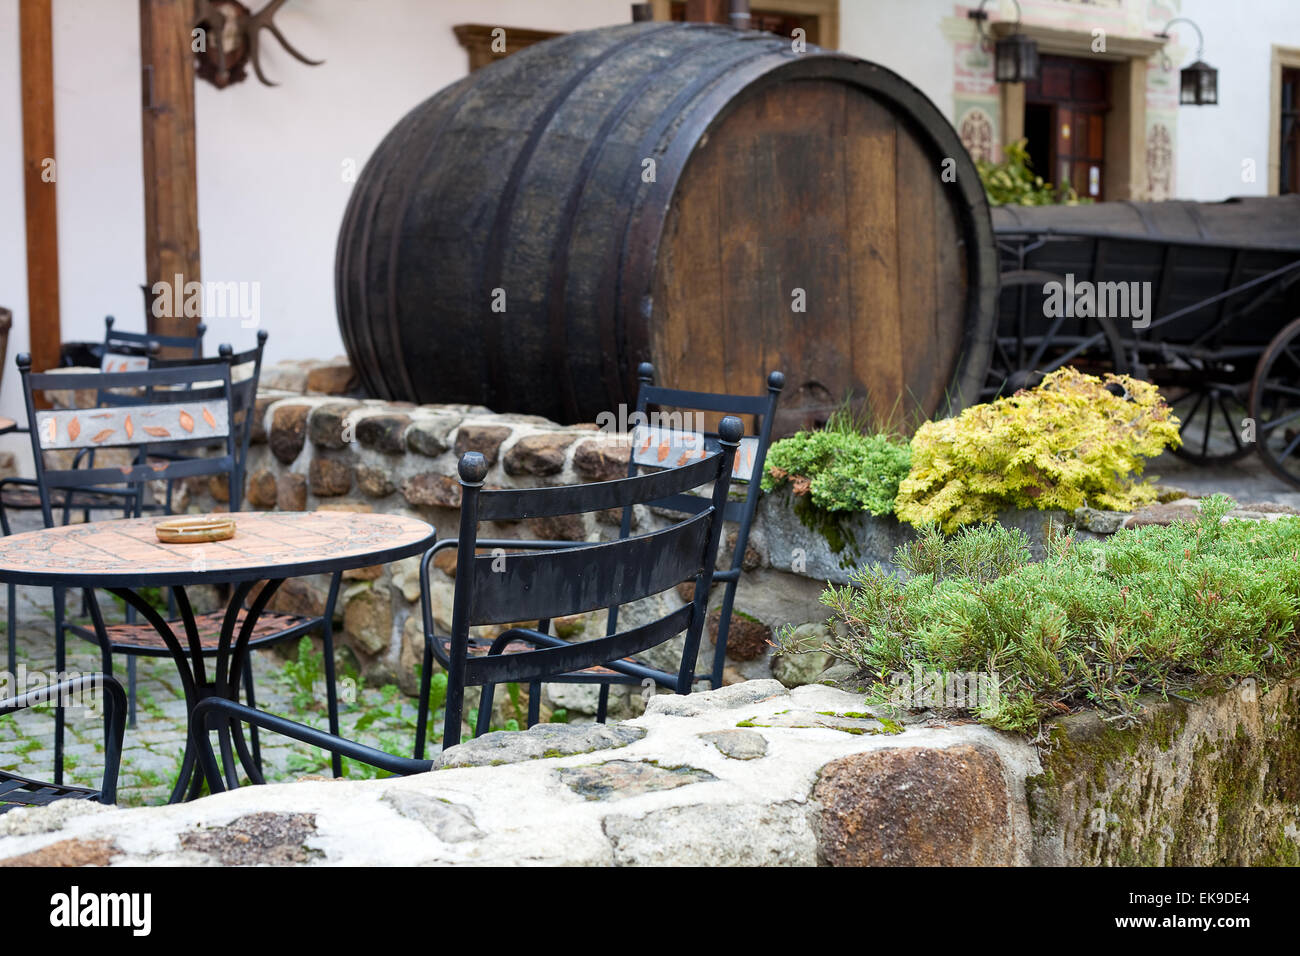 forged furniture cafe and a large beer keg Stock Photo: 80728092 - Alamy